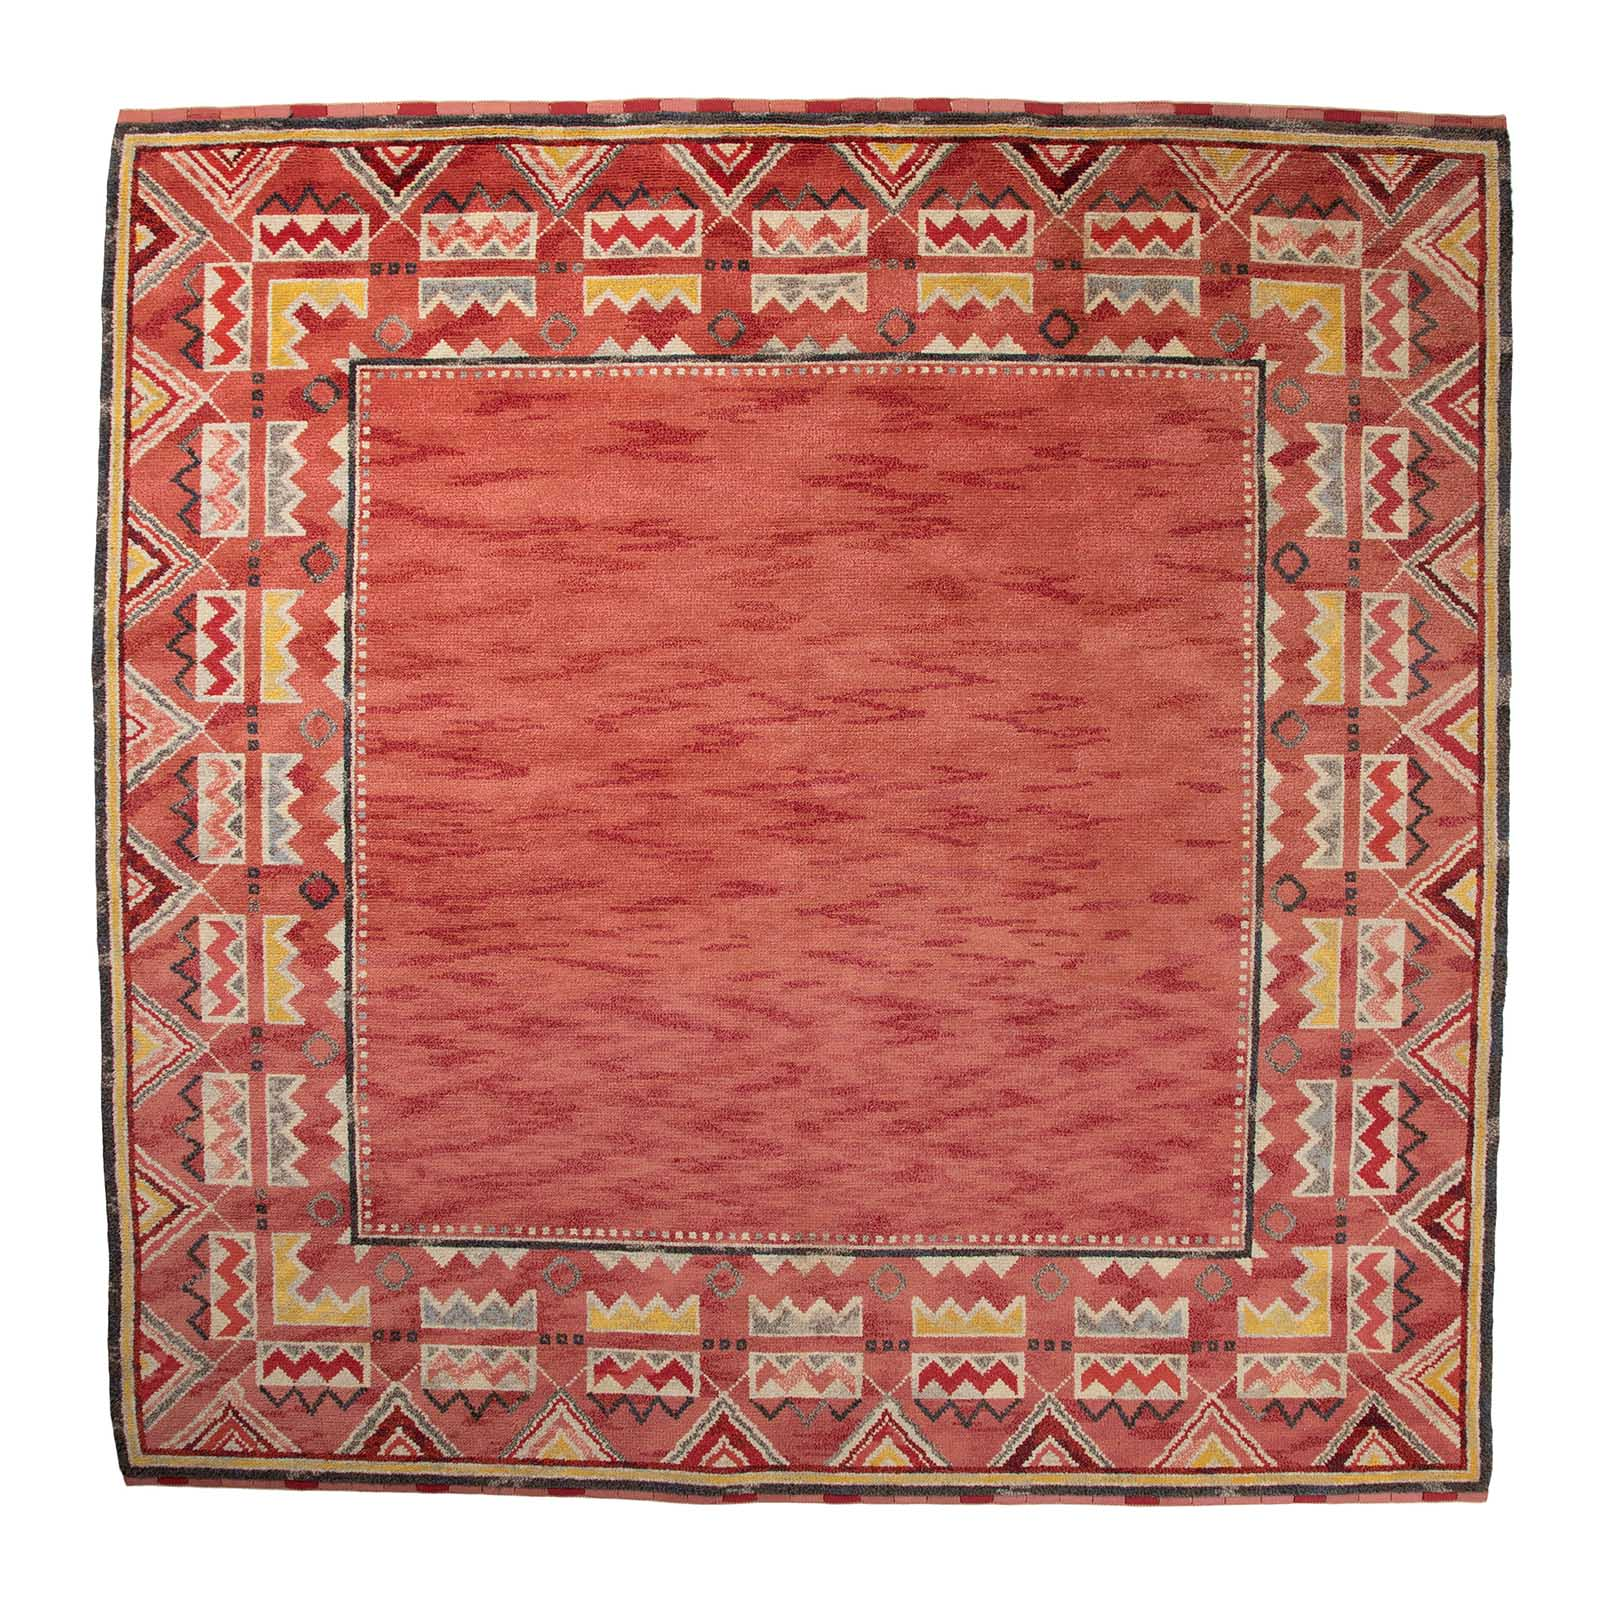 A large Swedish mid century rug